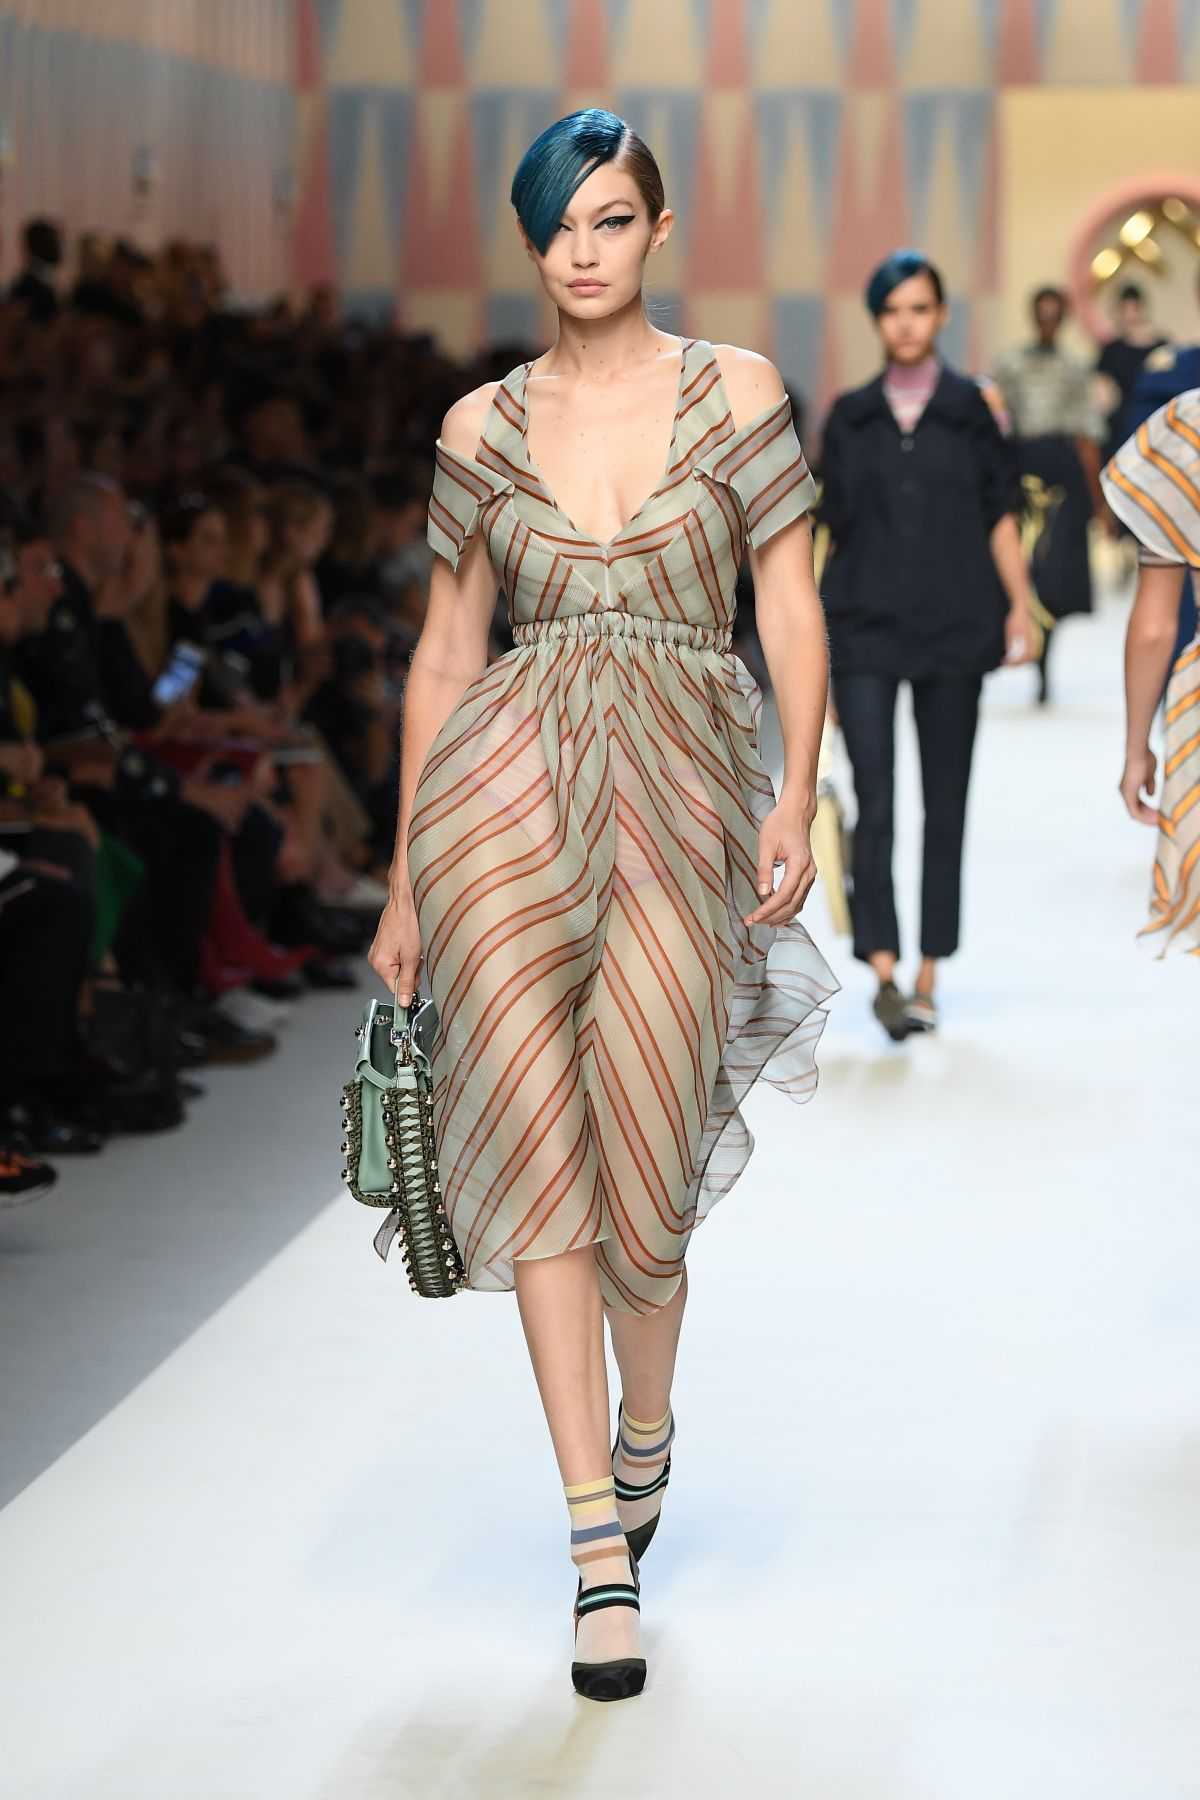 gigi hadid runway at fendi fashion show during milan ForRunway Fashion Show Video